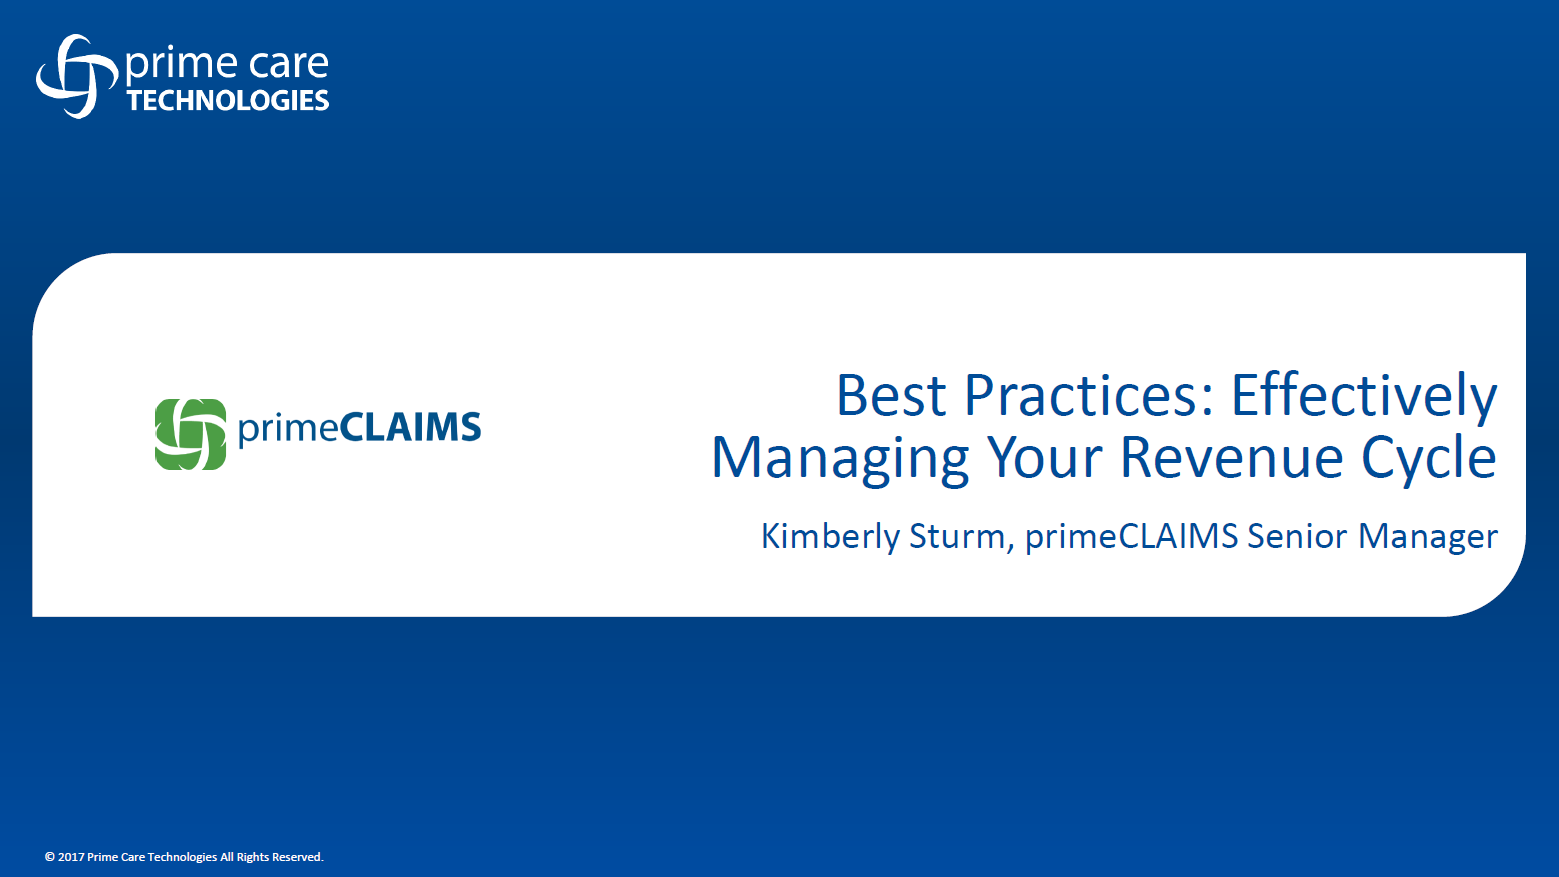 Best Practices for Post-Acute Care Revenue Cycle Management